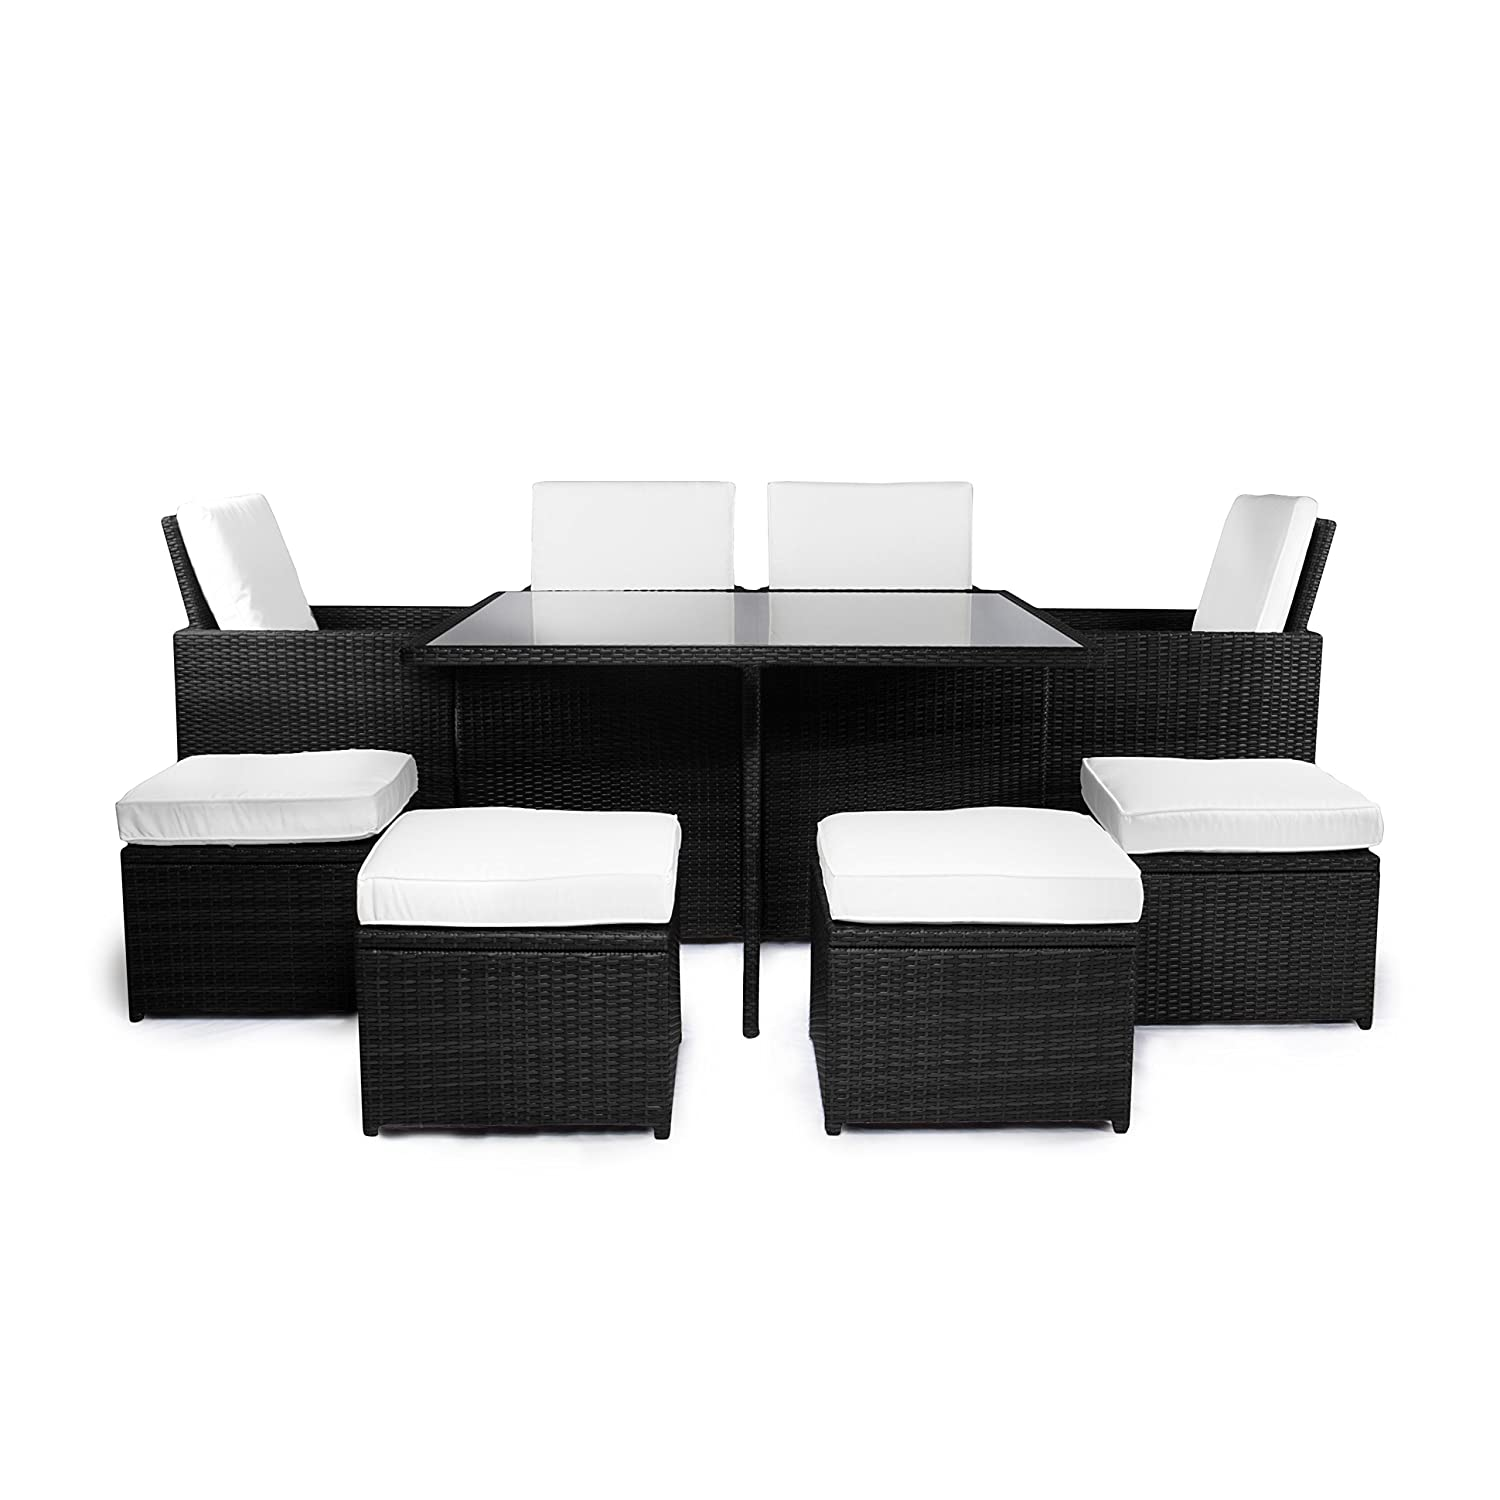 vanage gartenm bel set sydney in schwarz wei rattan optik polyrattan lounge m bel f r. Black Bedroom Furniture Sets. Home Design Ideas